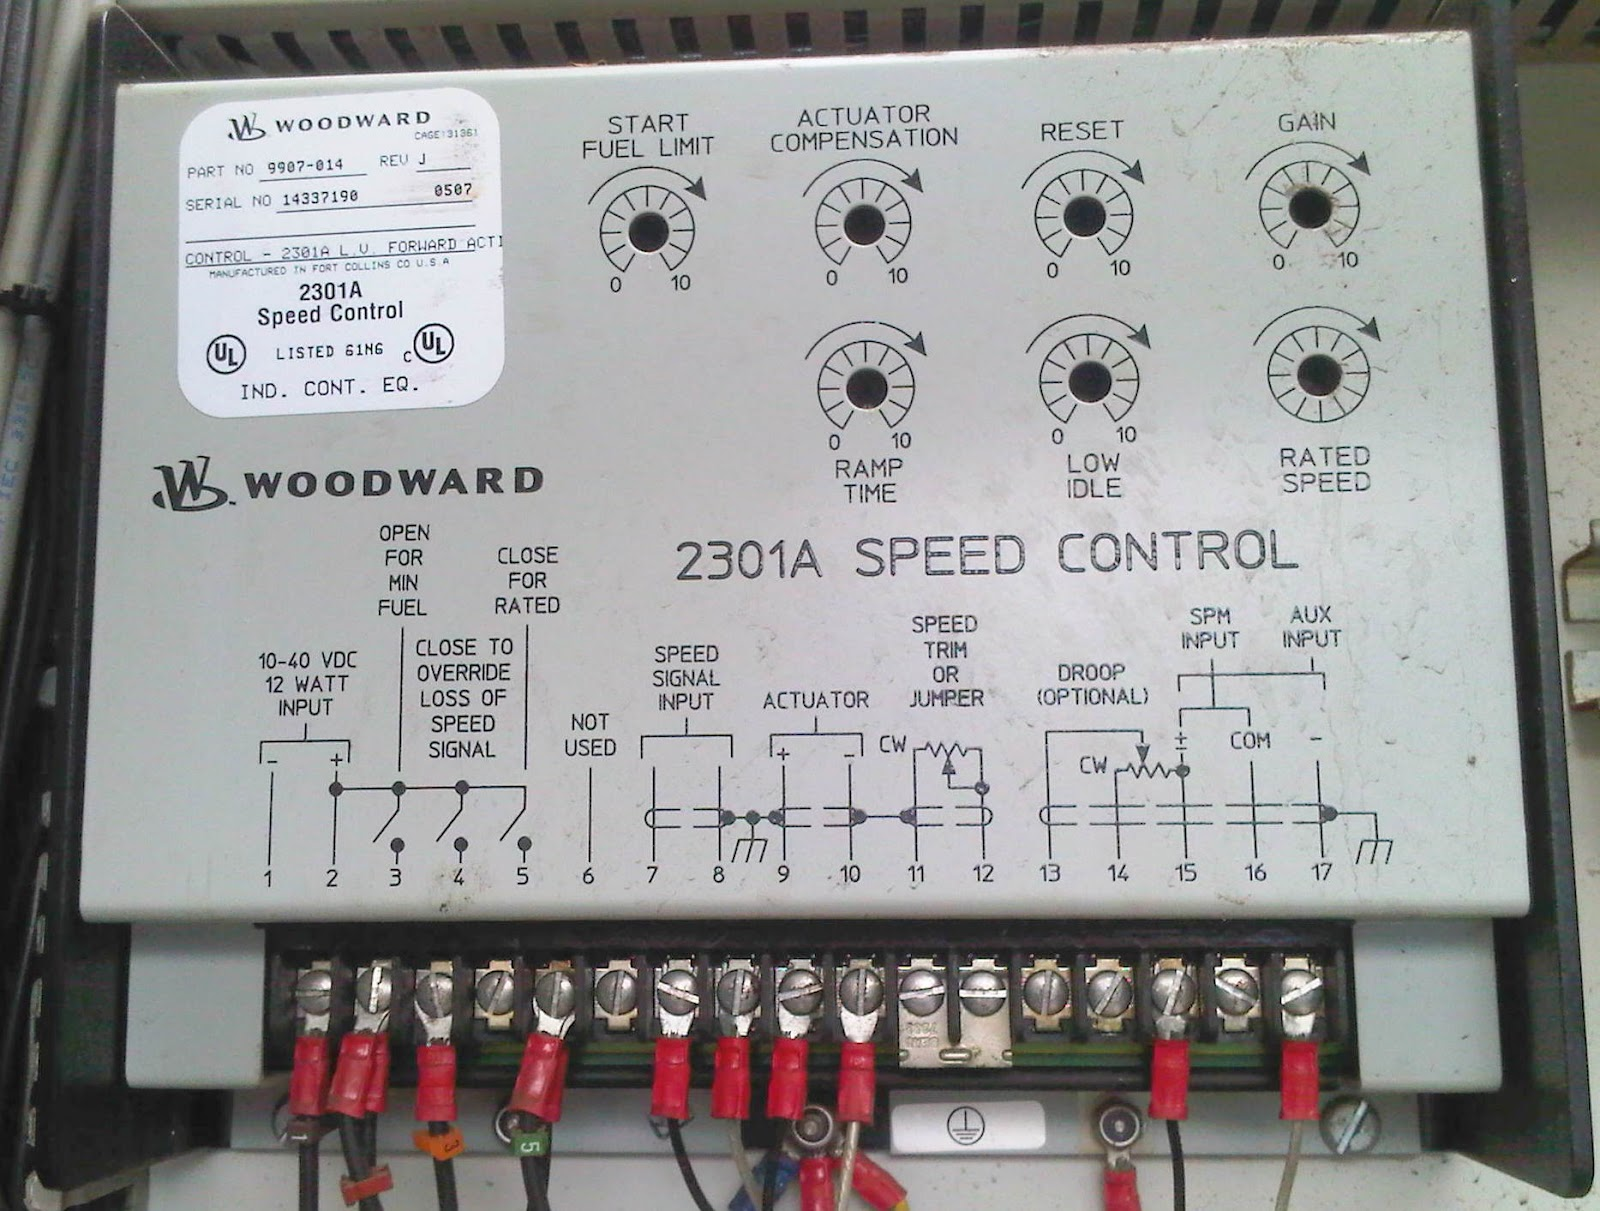 woodward speed controller ship spares rh svship blogspot com Woodward 2301A Speed Control Part Woodward Governors Manuals